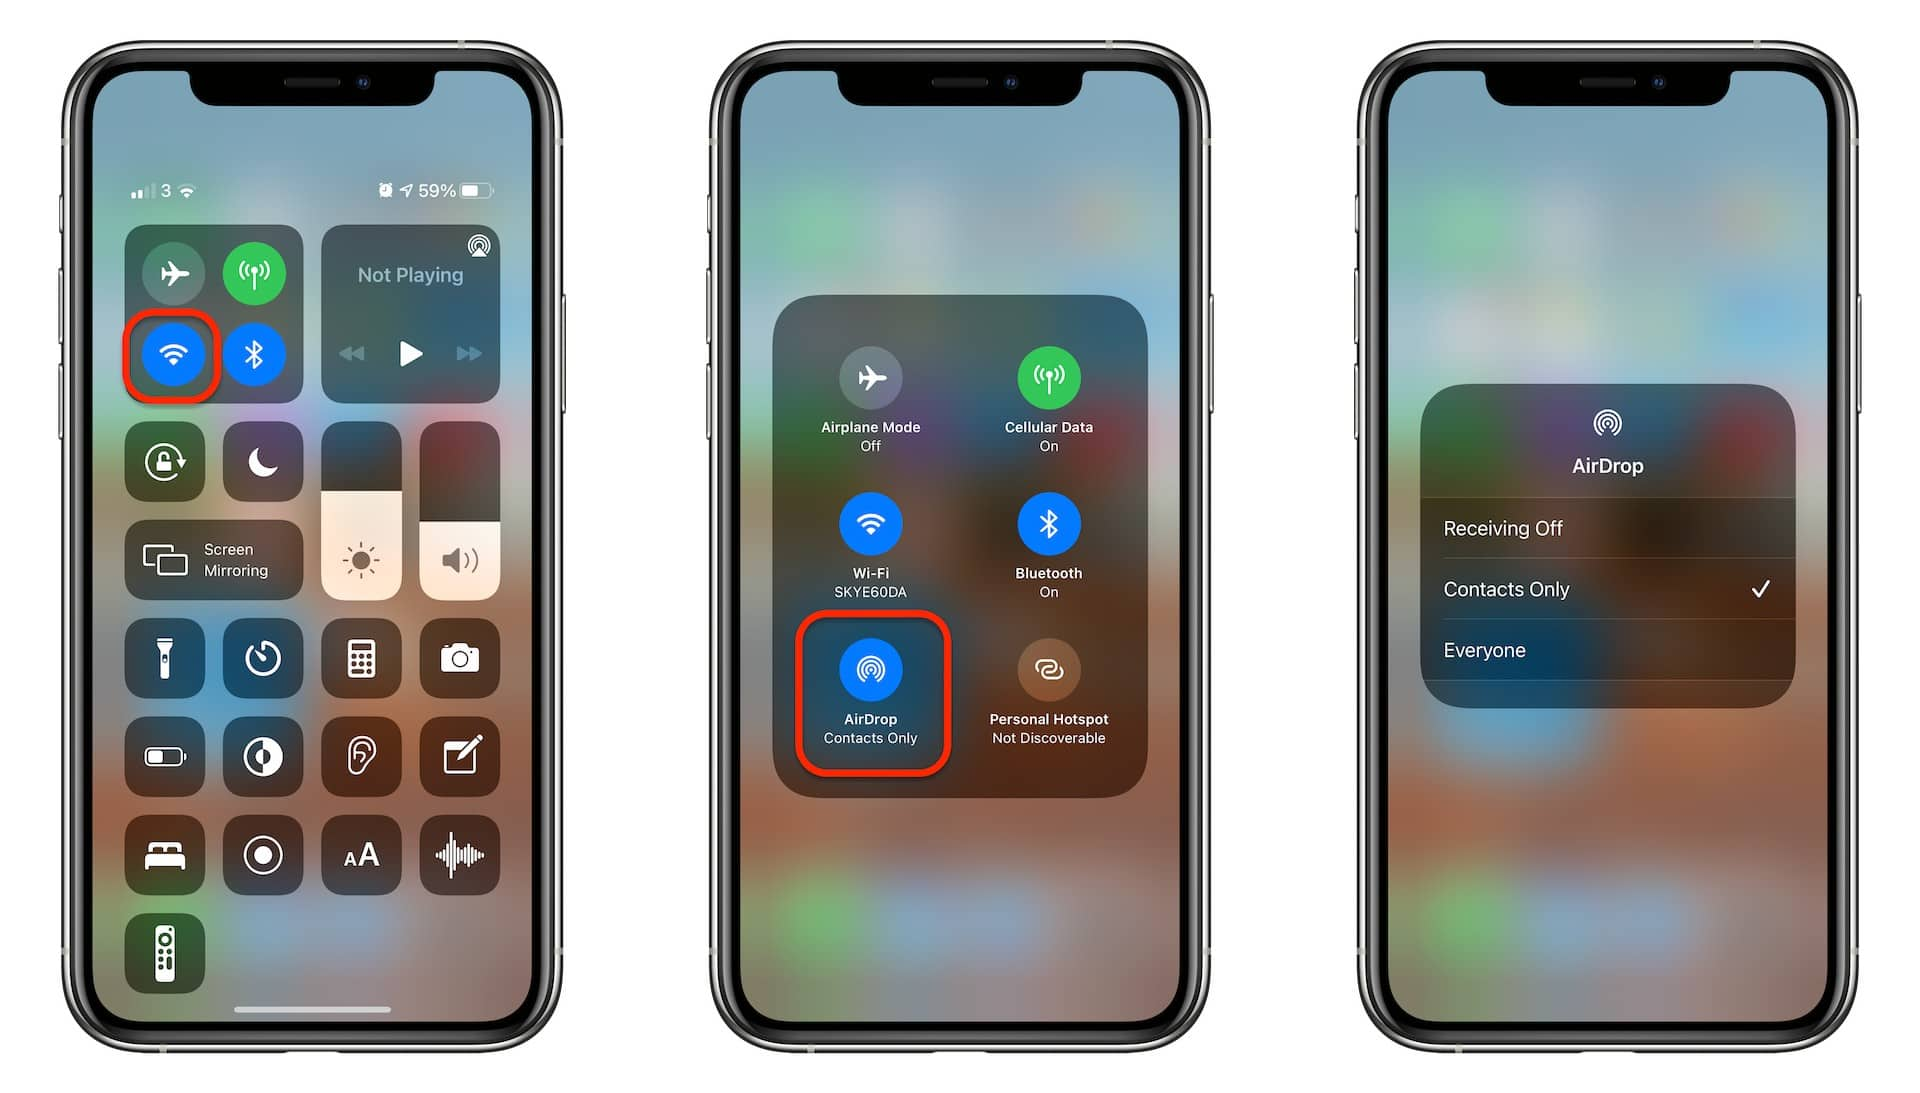 Control AirDrop in Control Center